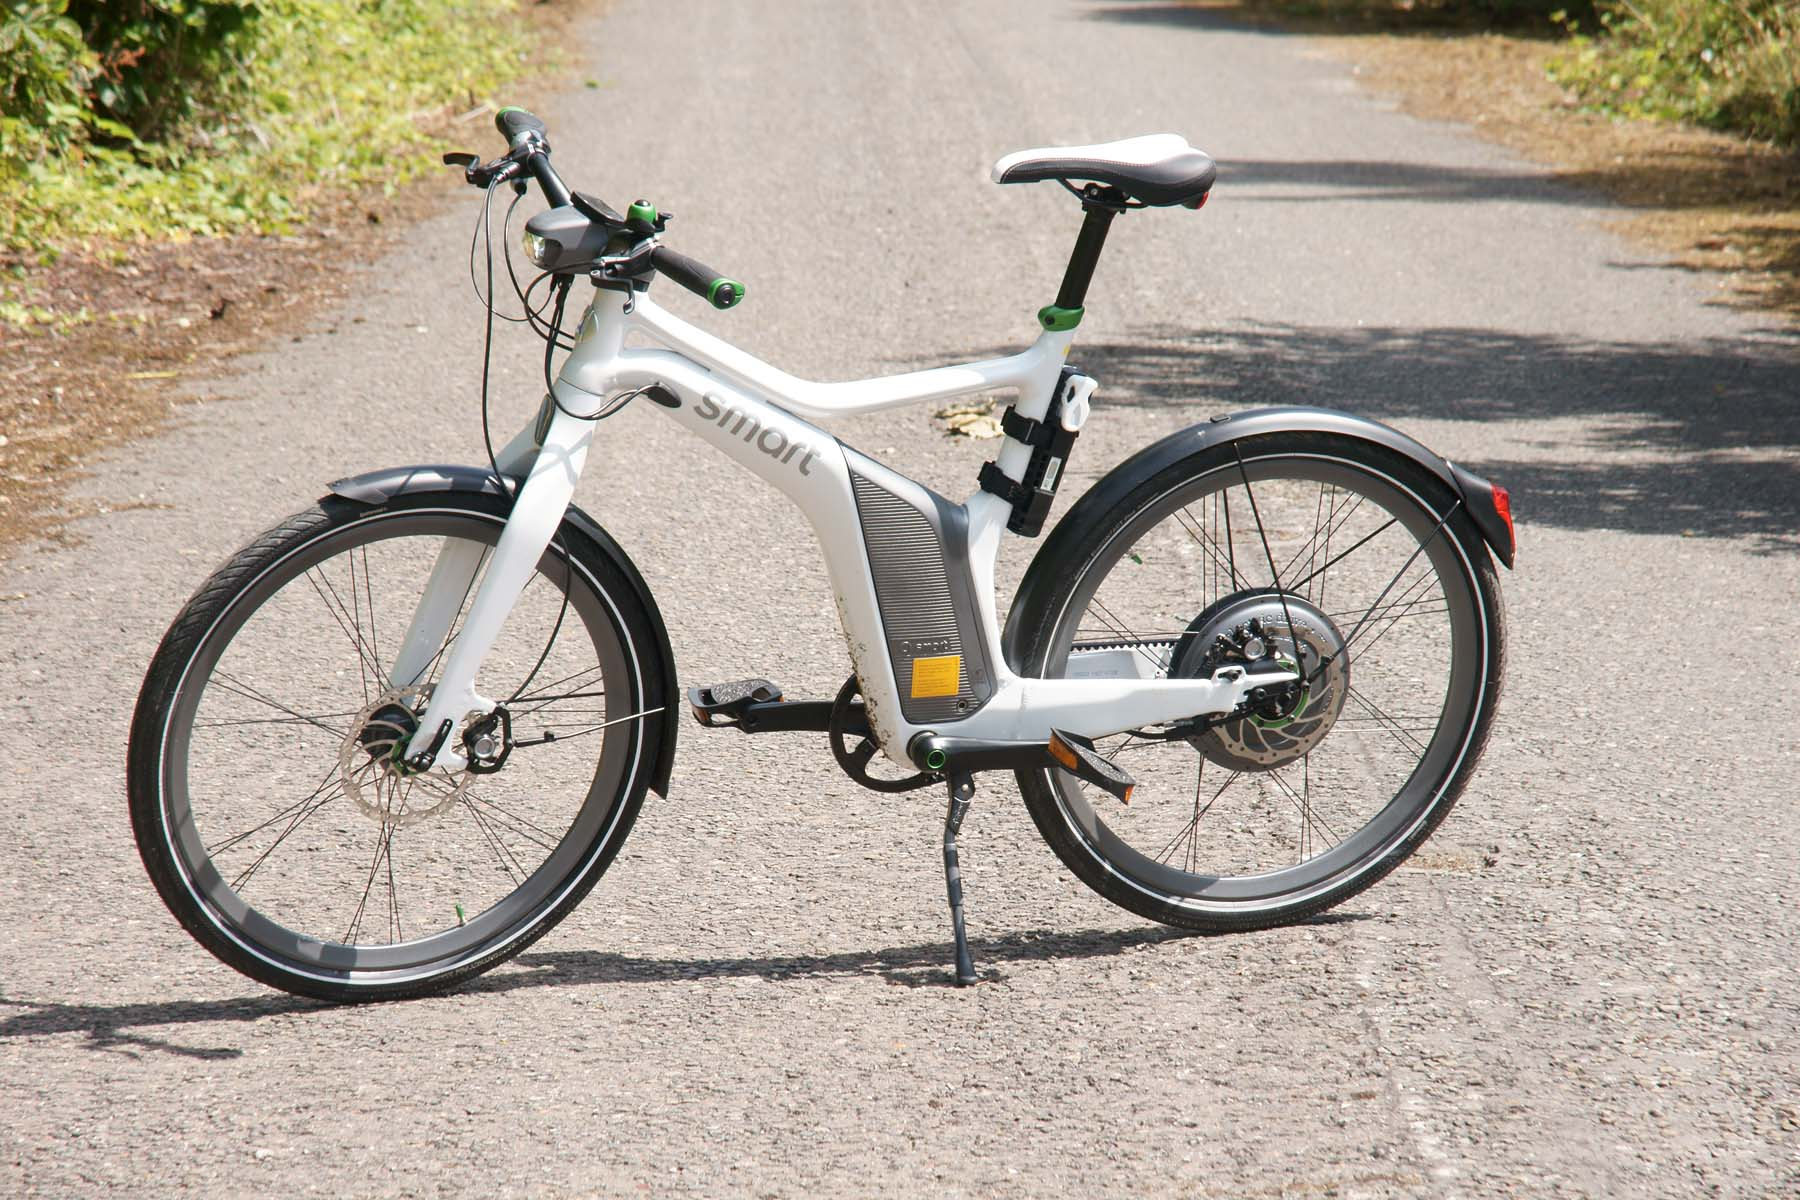 Smart Ebike Pedelec Electric Pedal Assist Cycle 163 2499